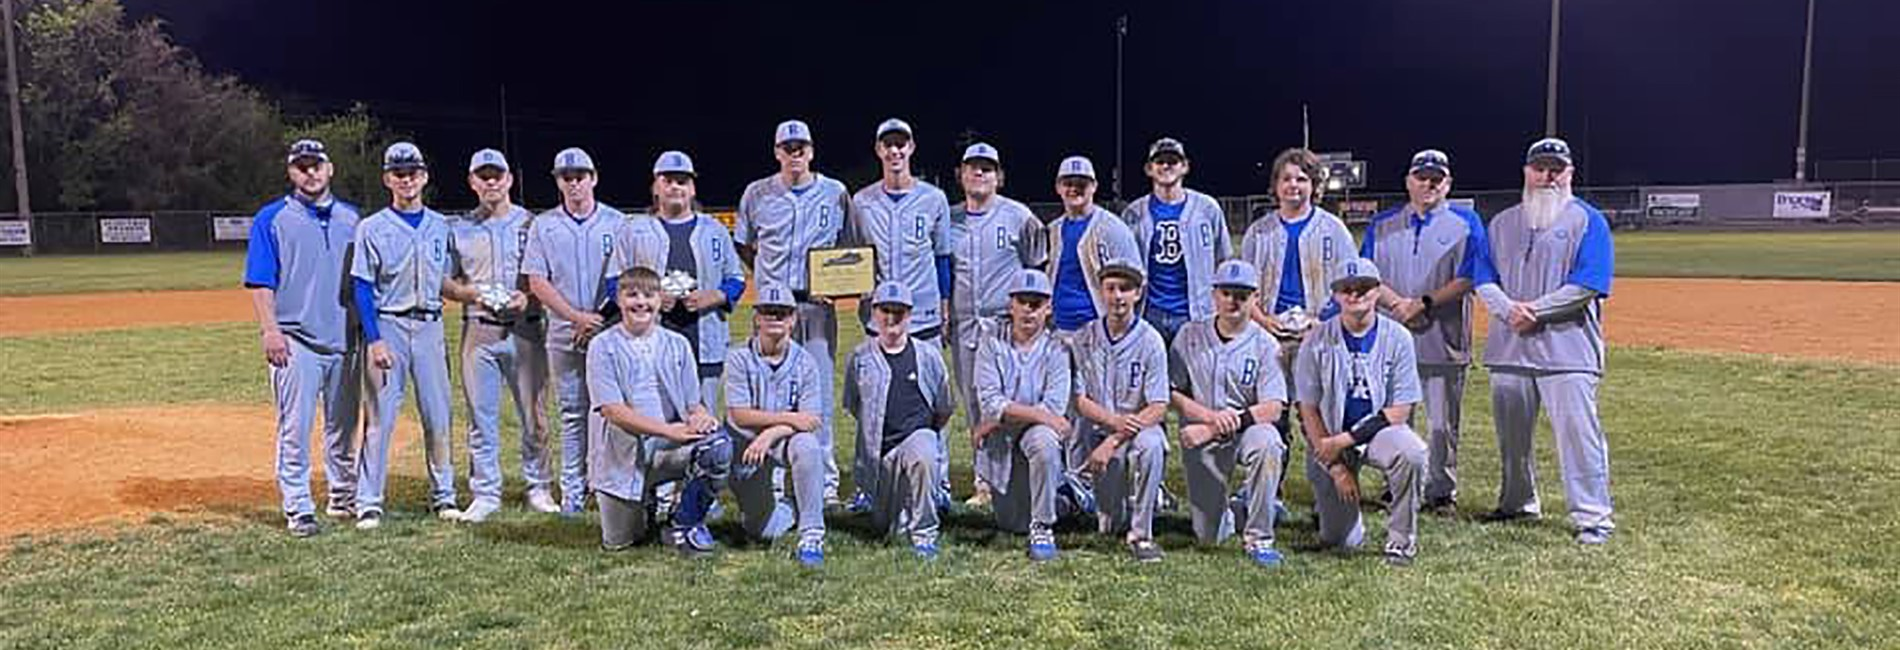 Congratulations to the CCHS Baseball Team - 4th Region All A Champs!